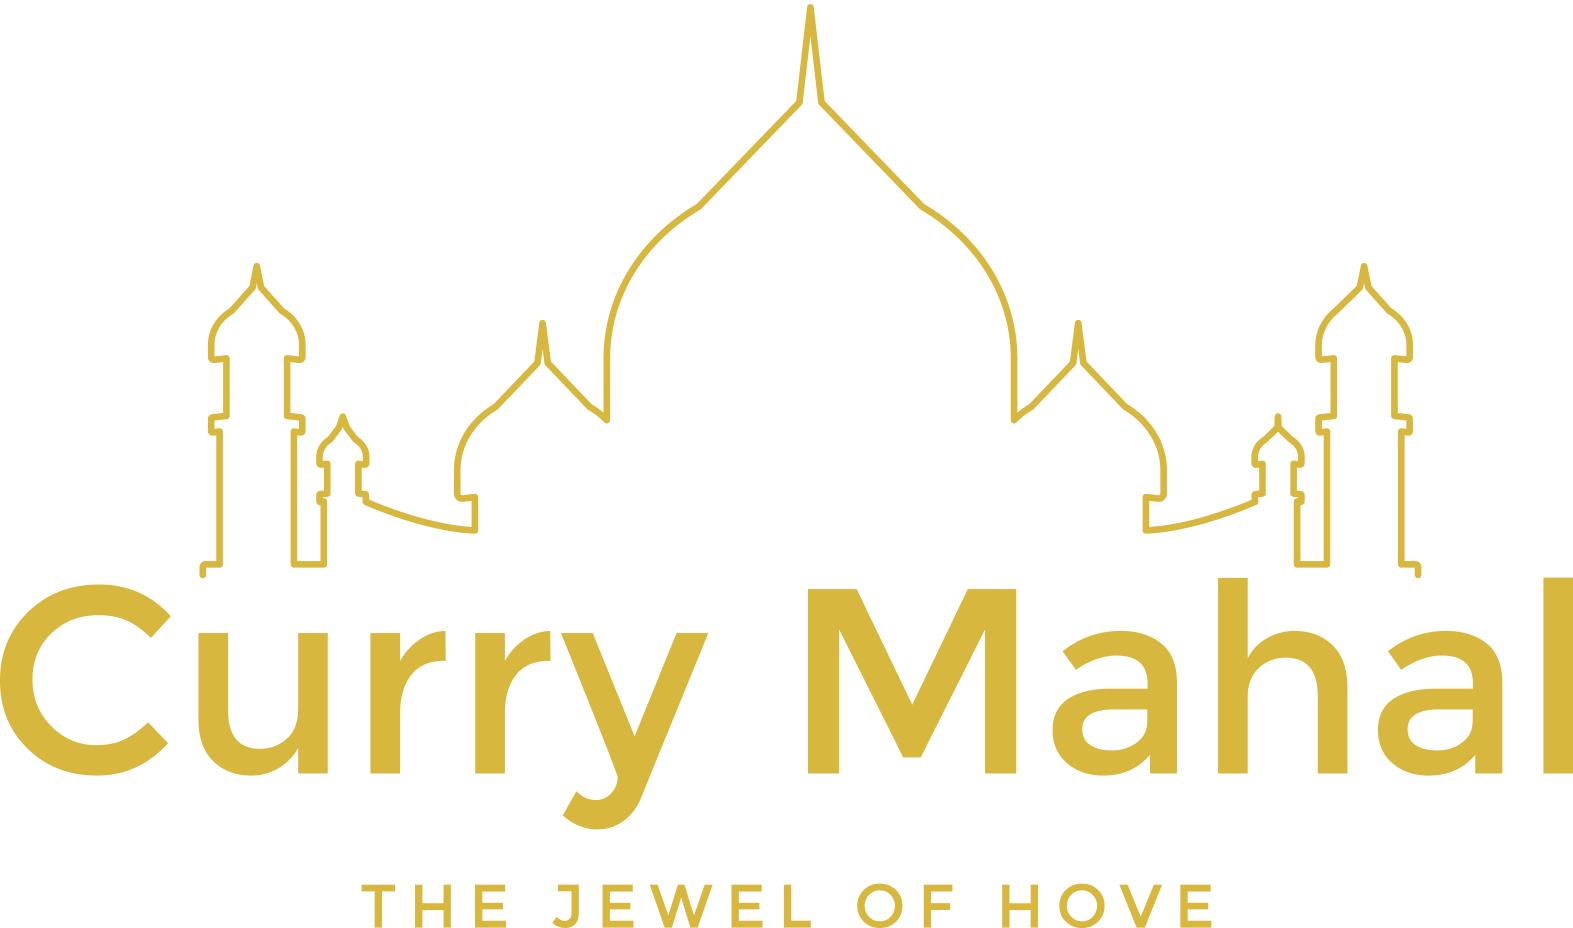 Curry Mahal Hove